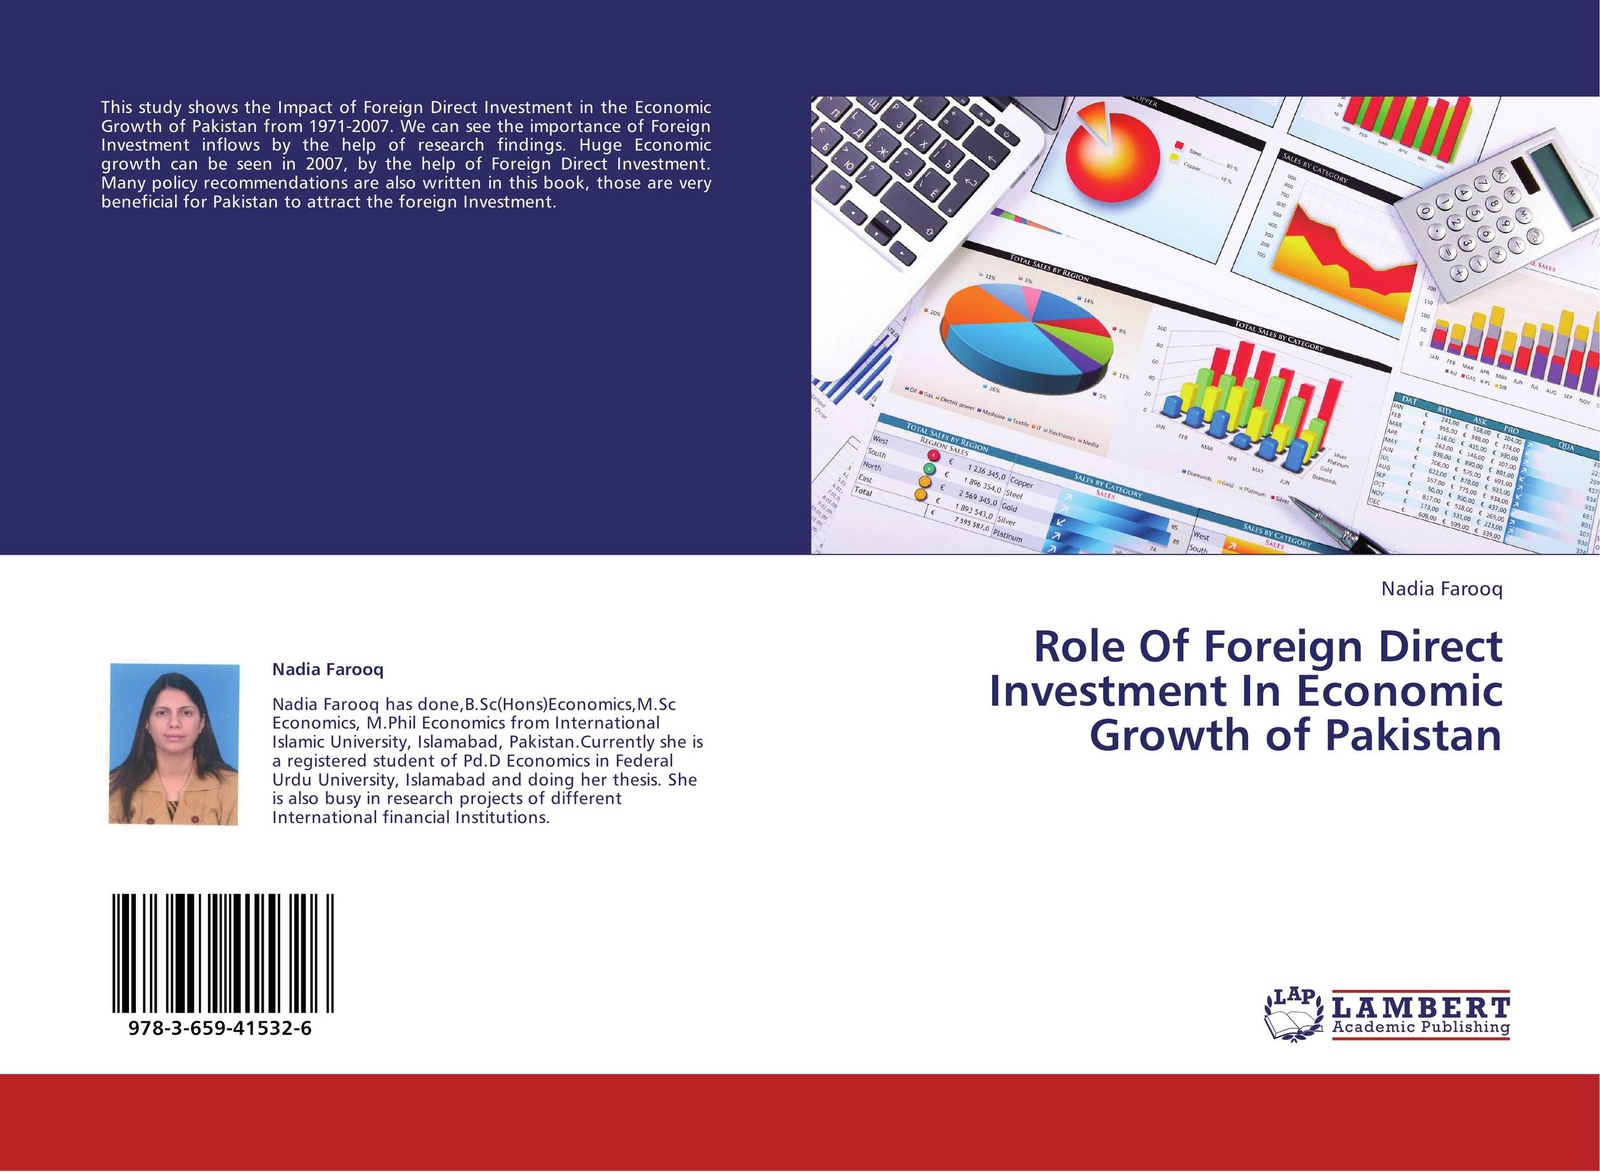 Nadia Farooq Role Of Foreign Direct Investment In Economic Growth of Pakistan andreas epperlein foreign direct investment in ireland under consideration of the financial services sector in particular